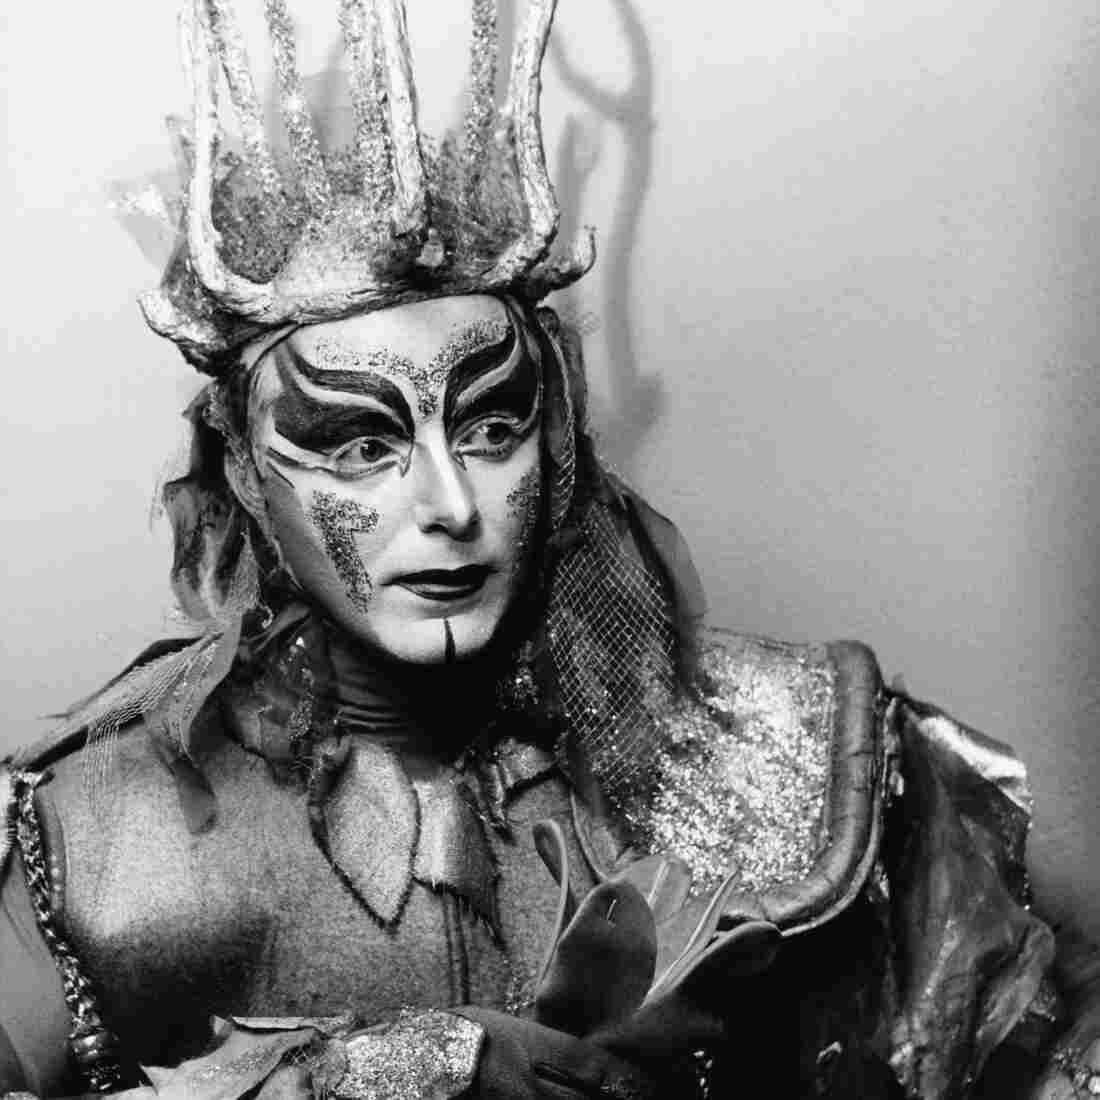 Russell Oberlin as Oberon in Benjamin Britten's A Midsummer Night's Dream.